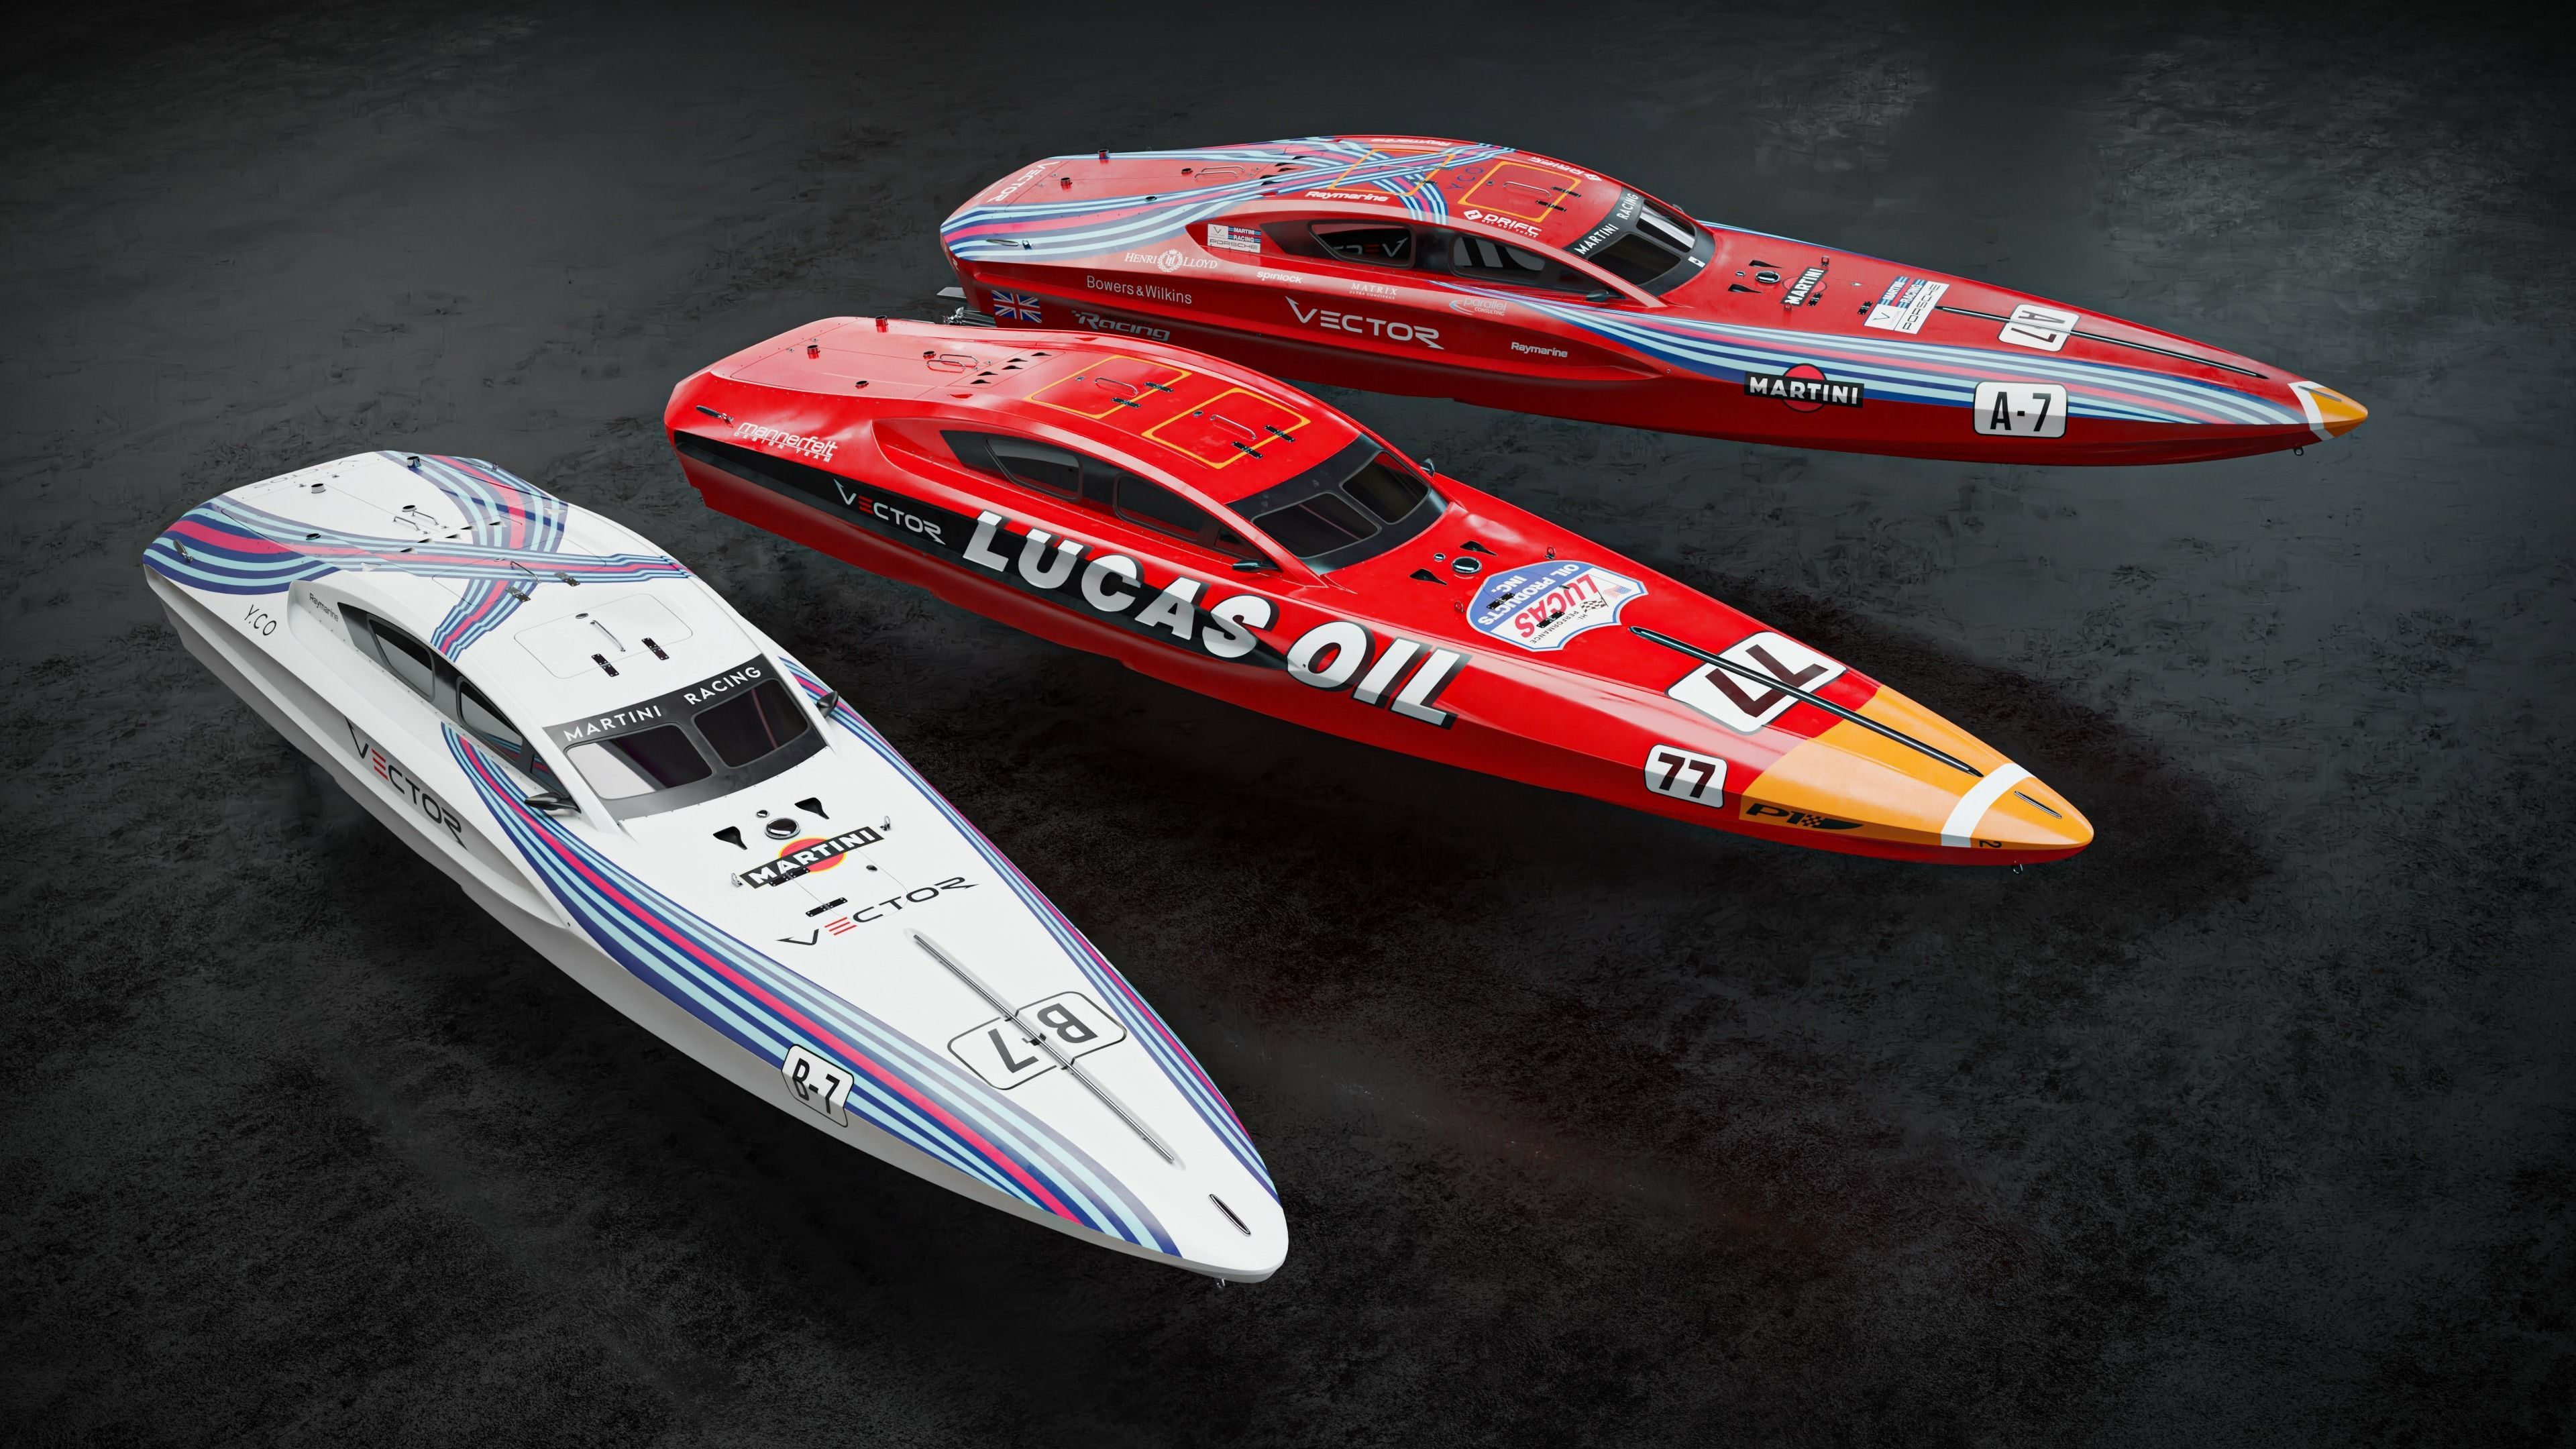 Vector V40R  offshore powerboat with 3 racing liveries